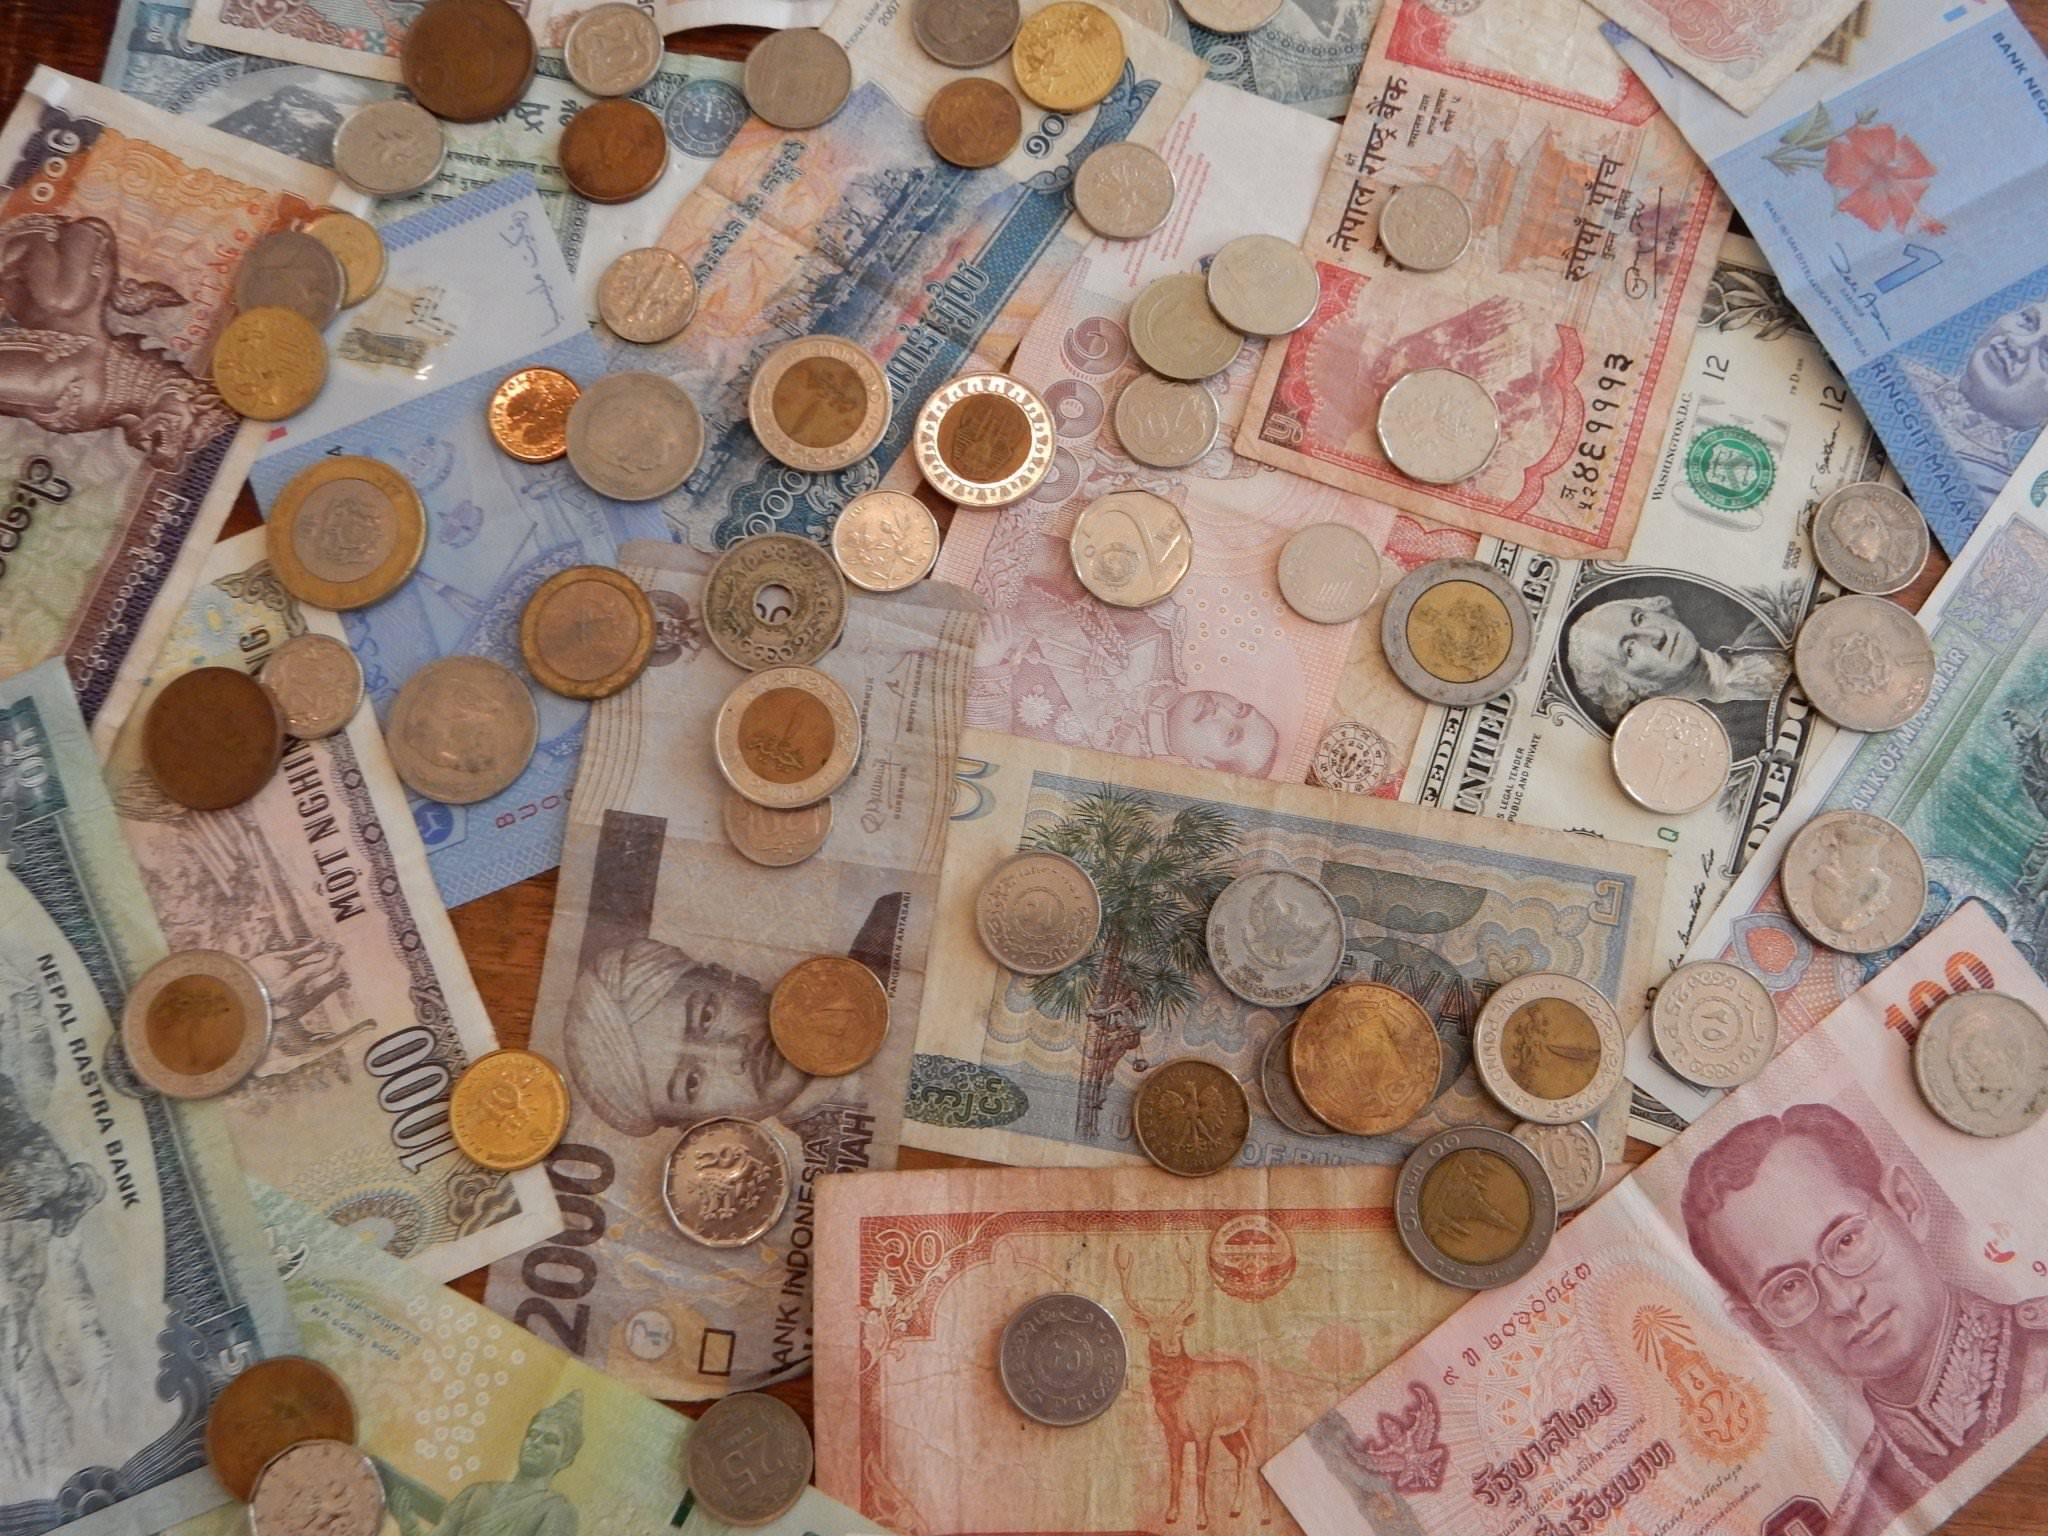 14 Currencies that Make You an Instant Millionaire